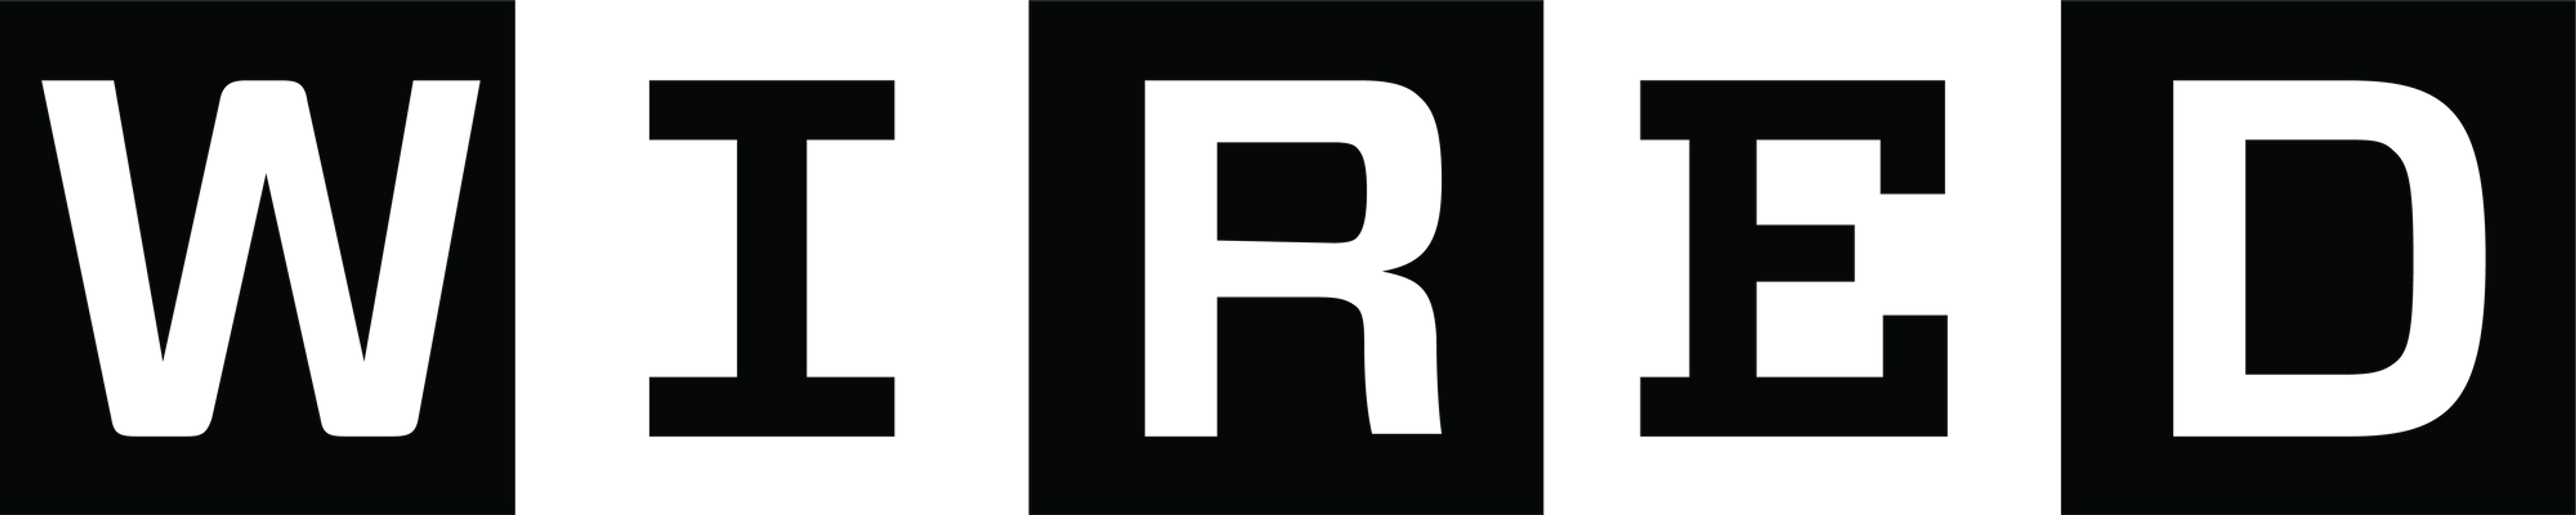 wired_logo_l.png